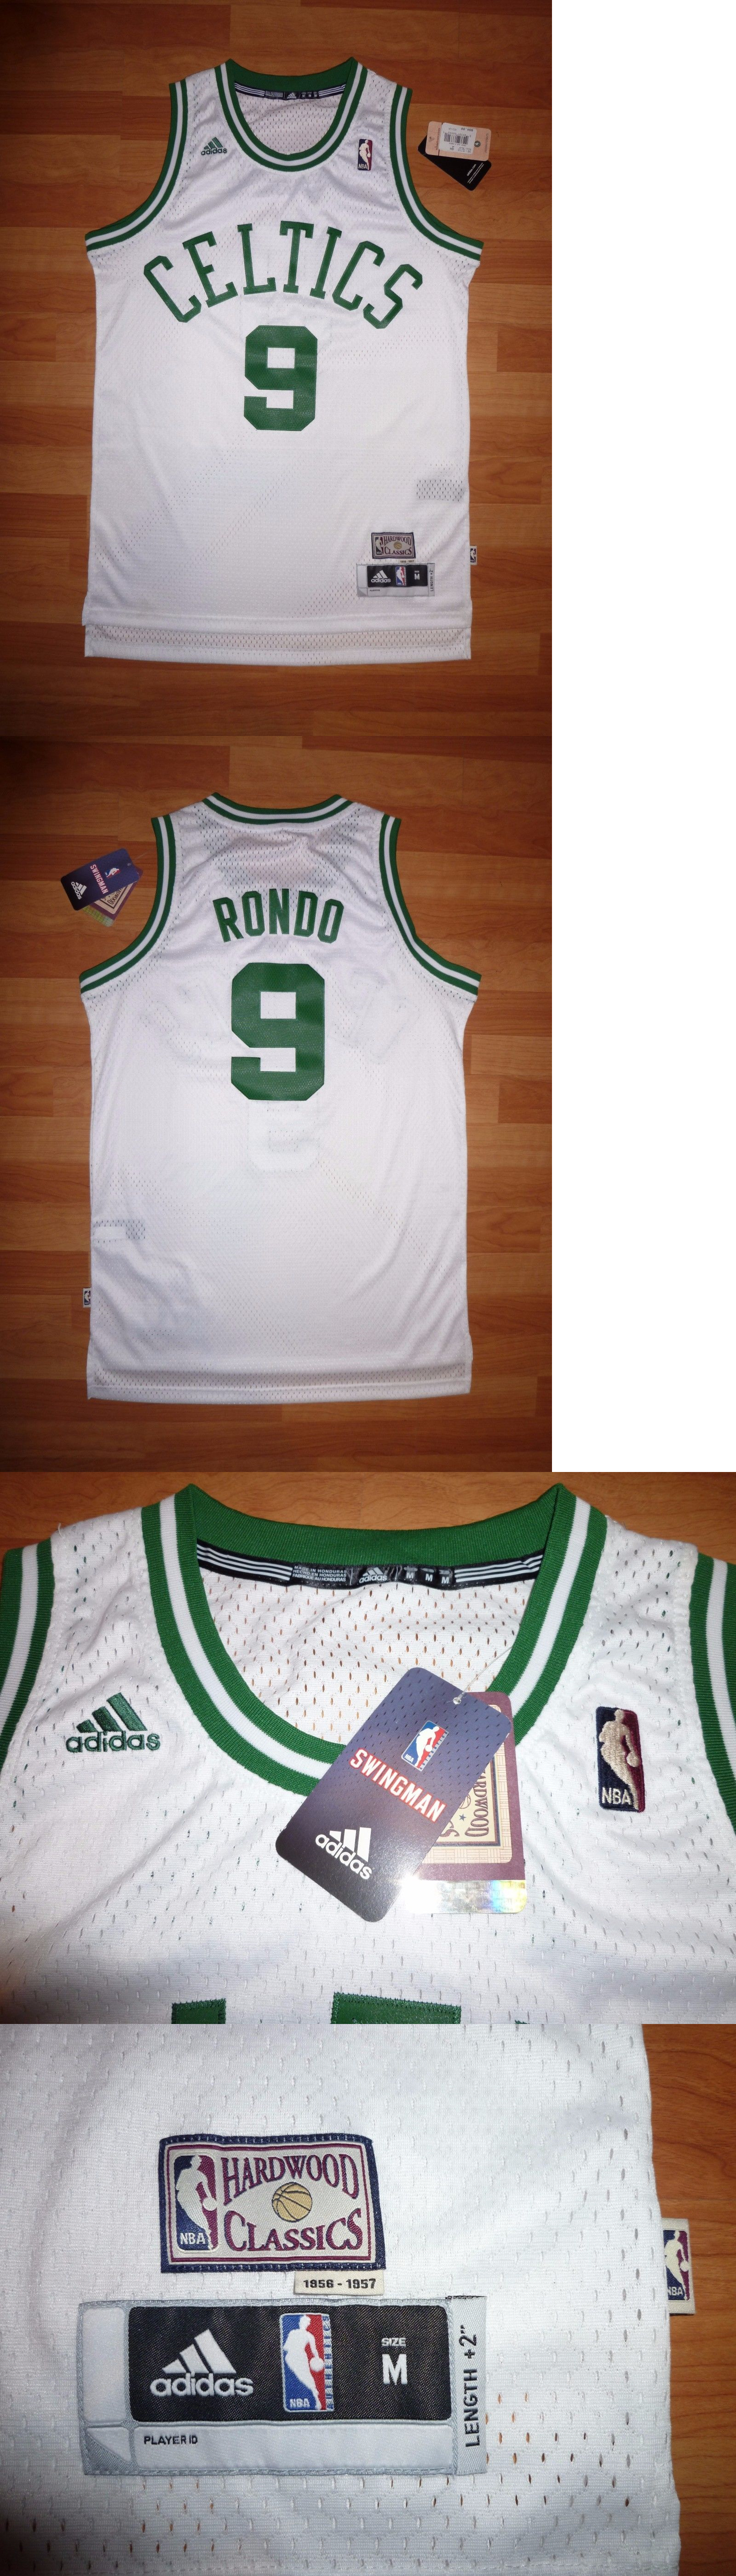 5eaf3f323f1a Basketball-NBA 24442  Nwt  9 Rajon Rondo Adidas Boston Celtics Hwc Whte  Swingman